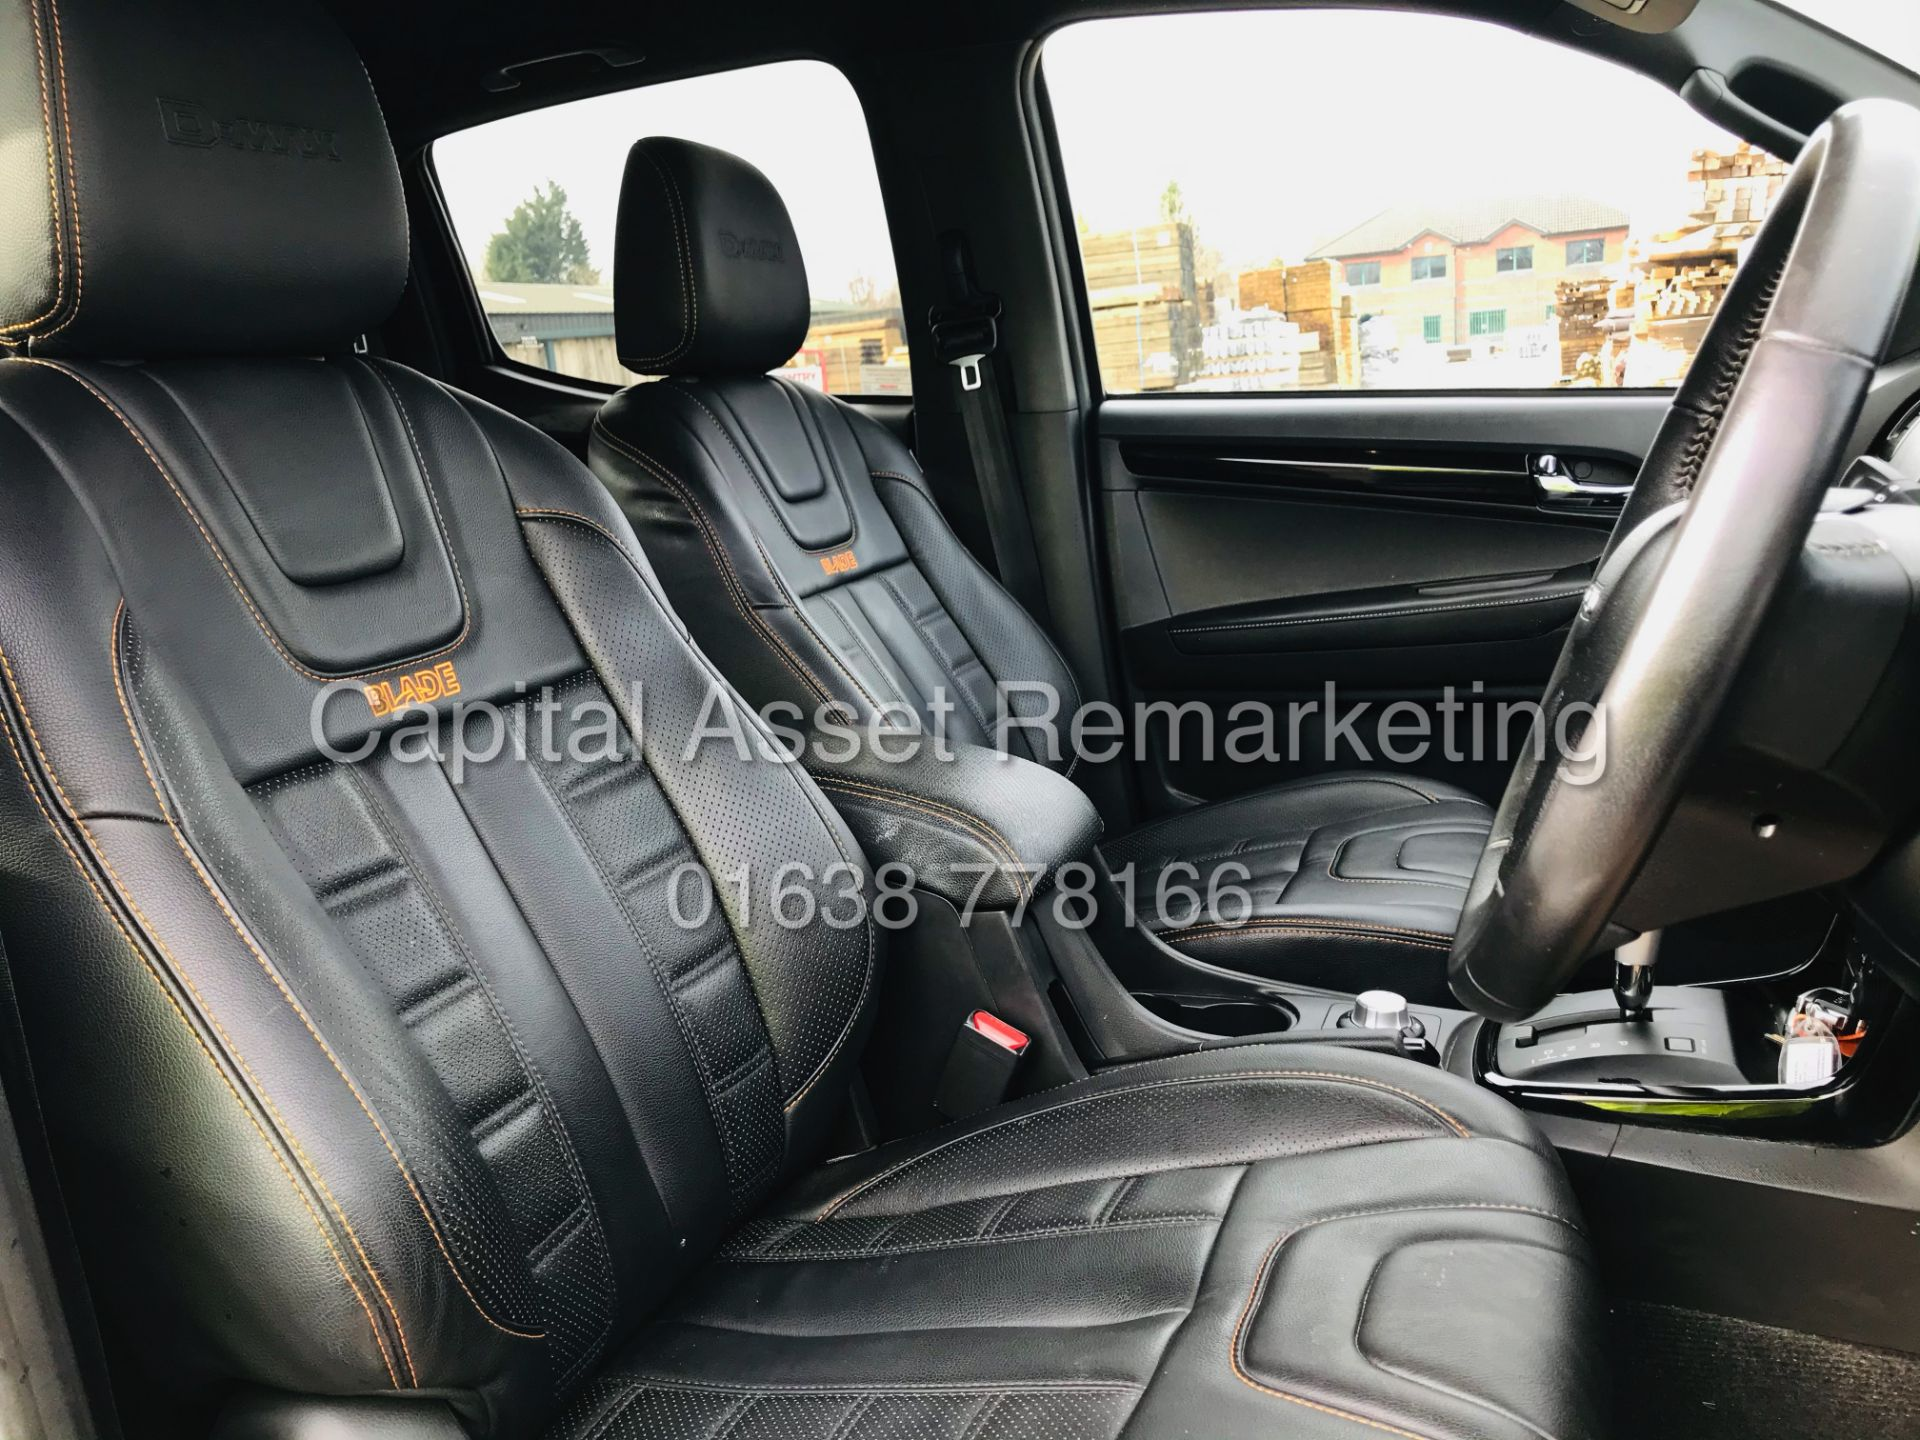 "(On Sale) ISUZU D-MAX ""BLADE"" AUTO - 1 OWNER (2019 - EURO 6) LEATHER - SAT NAV *TOP SPEC* - Image 16 of 34"